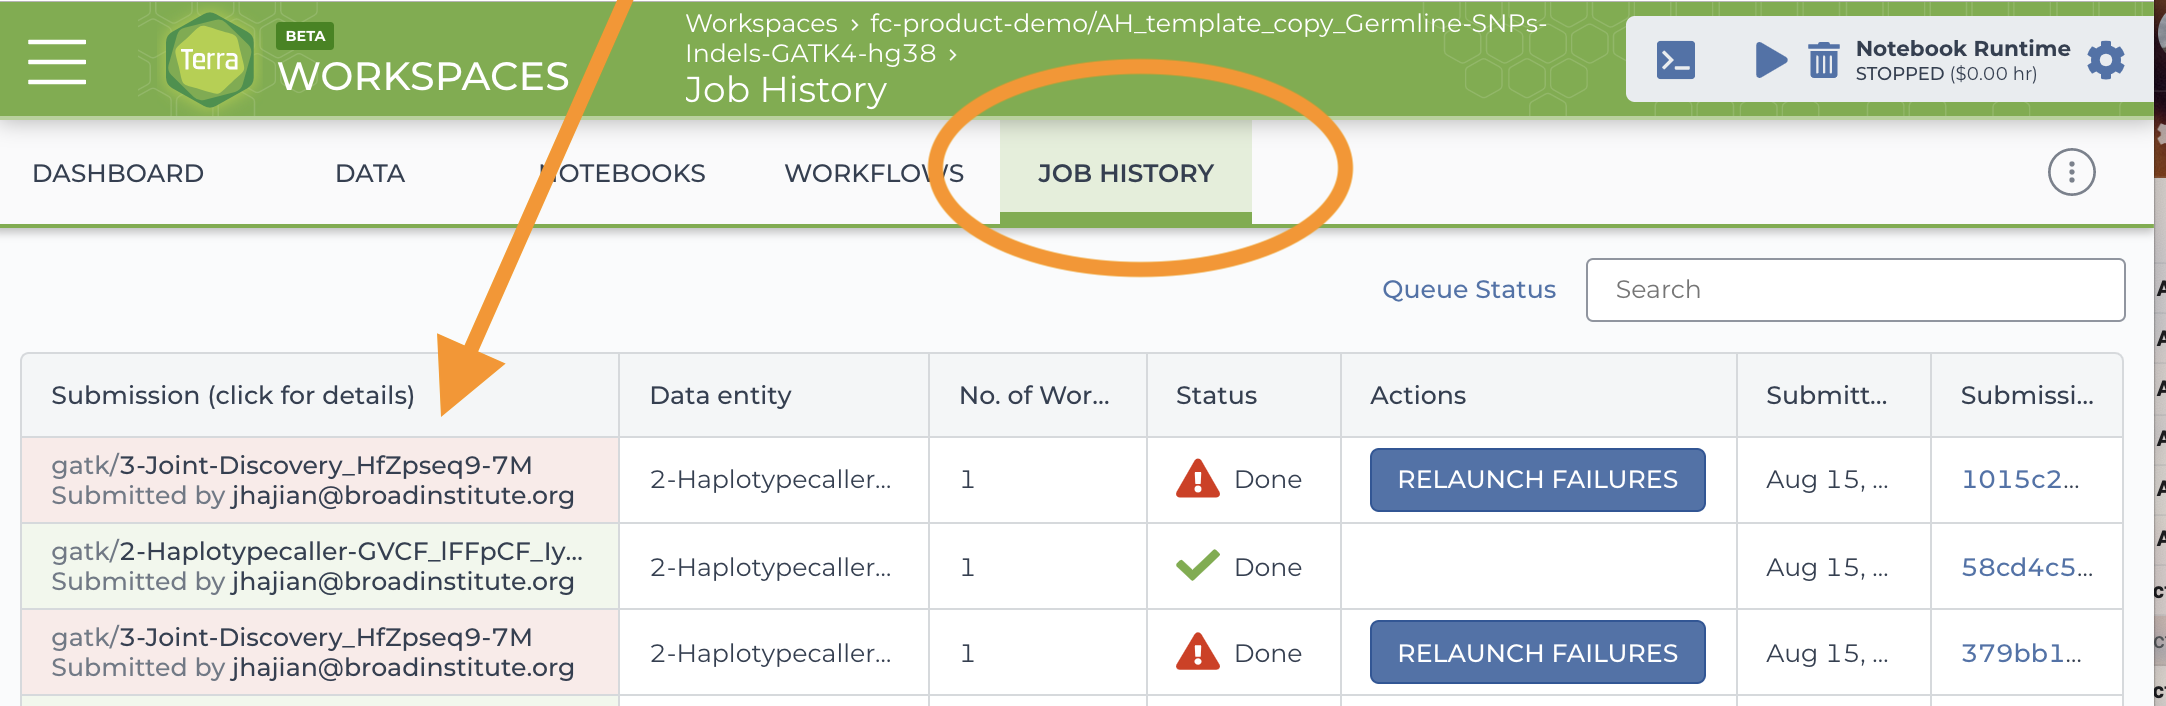 Job_History_submissions_Screenshot.png